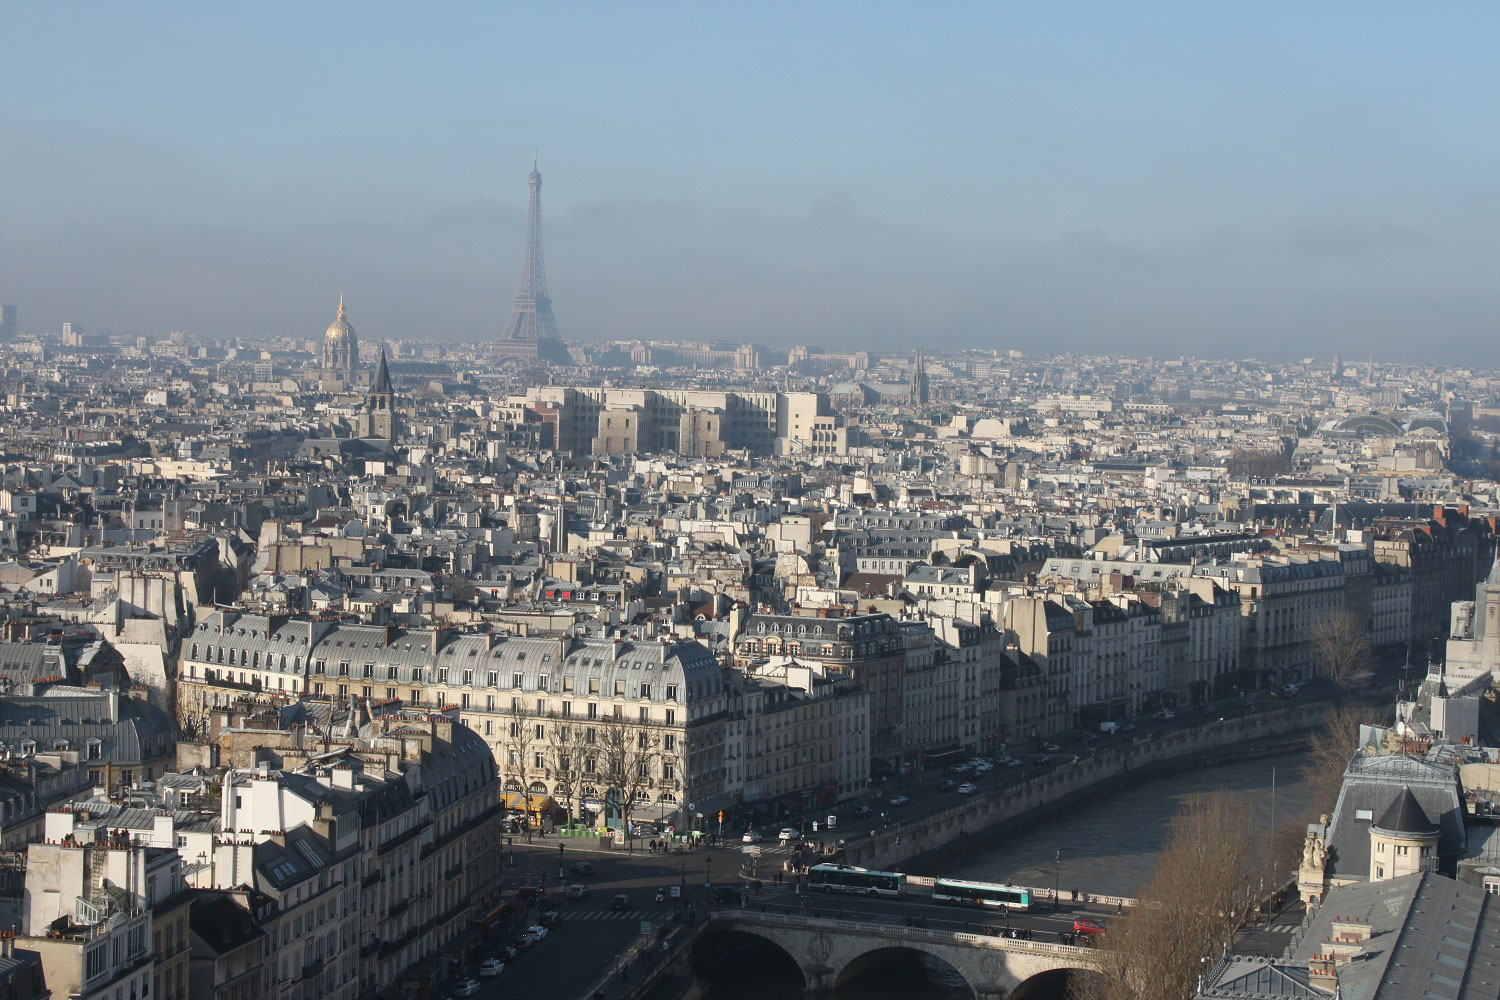 The view from Notre-Dame